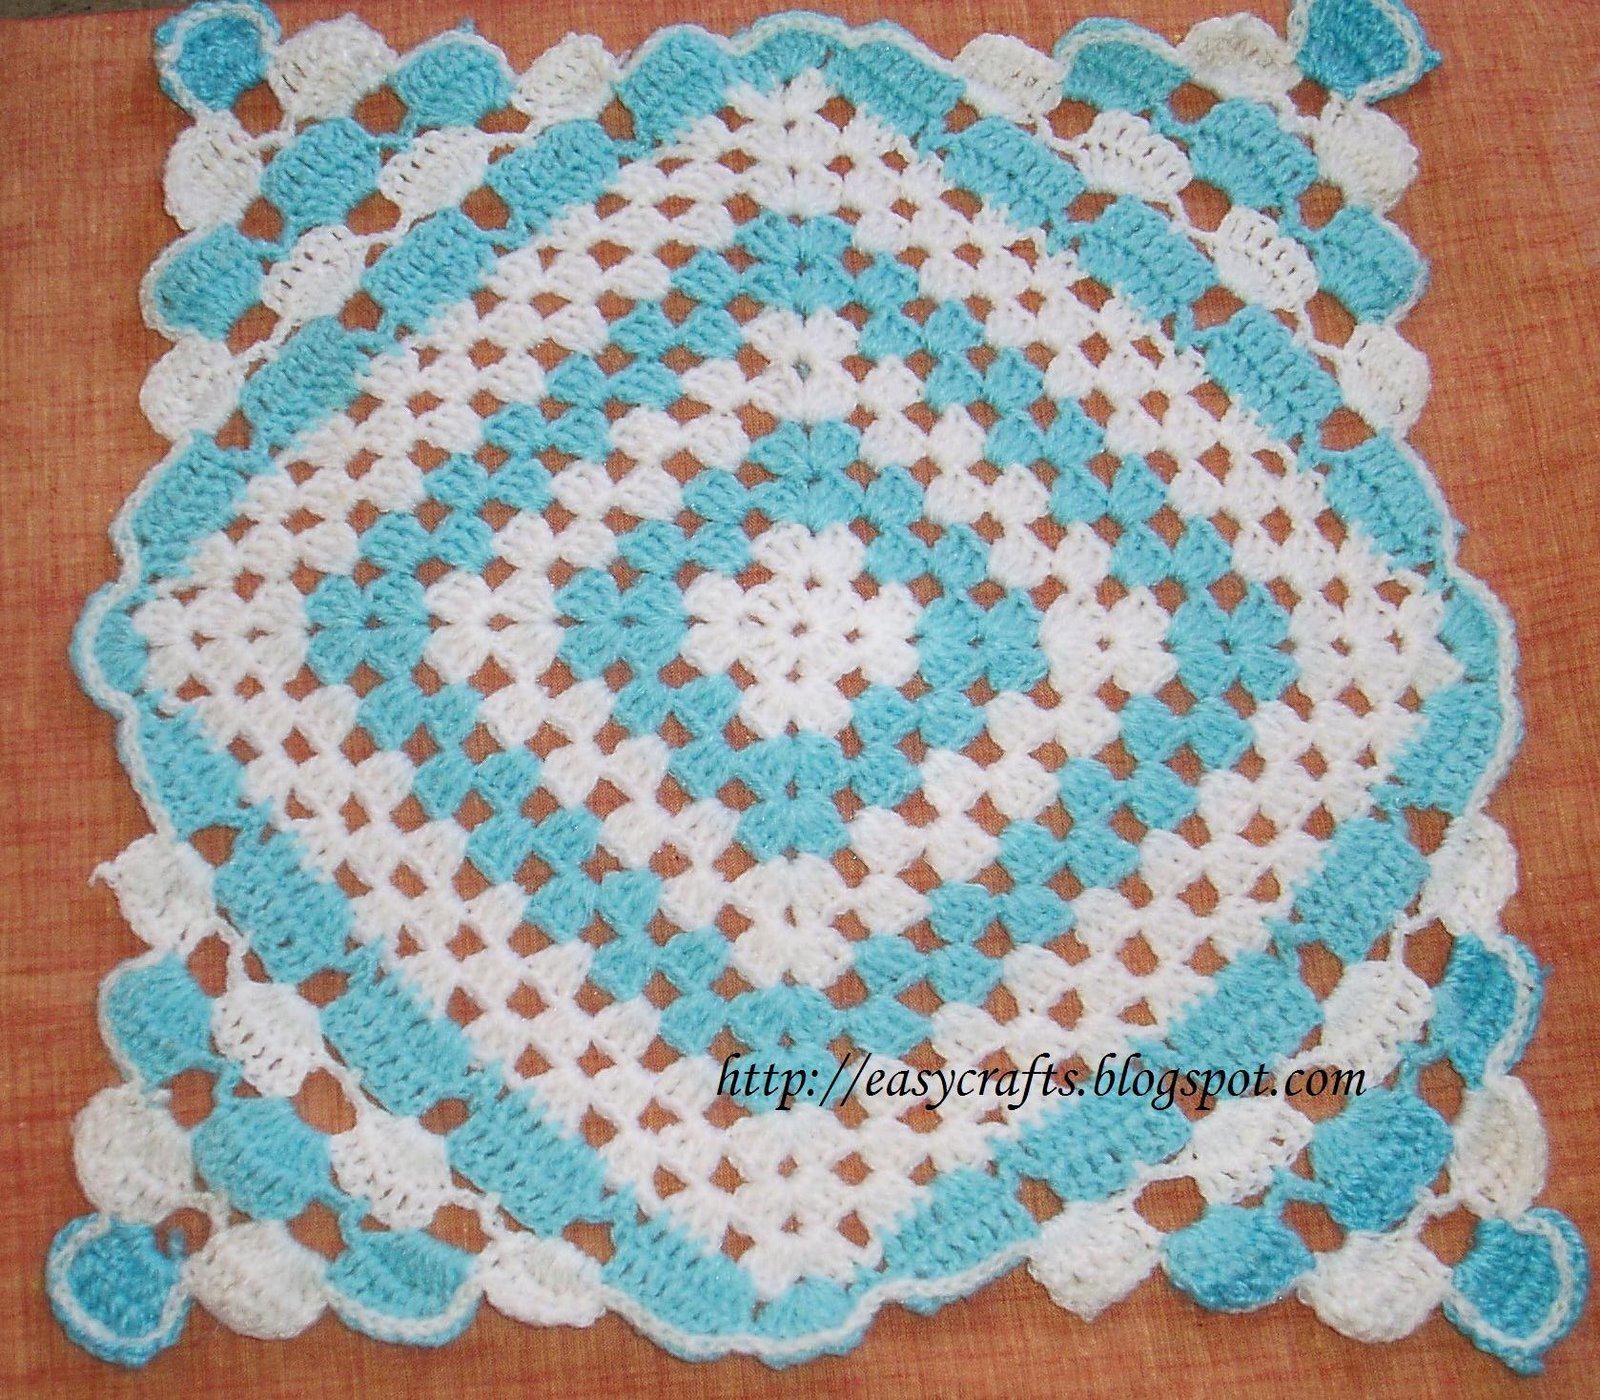 Crochet Easy Granny Square Patterns : CROCHET EASY FREE GRANNY PATTERN SQUARE Crochet Patterns